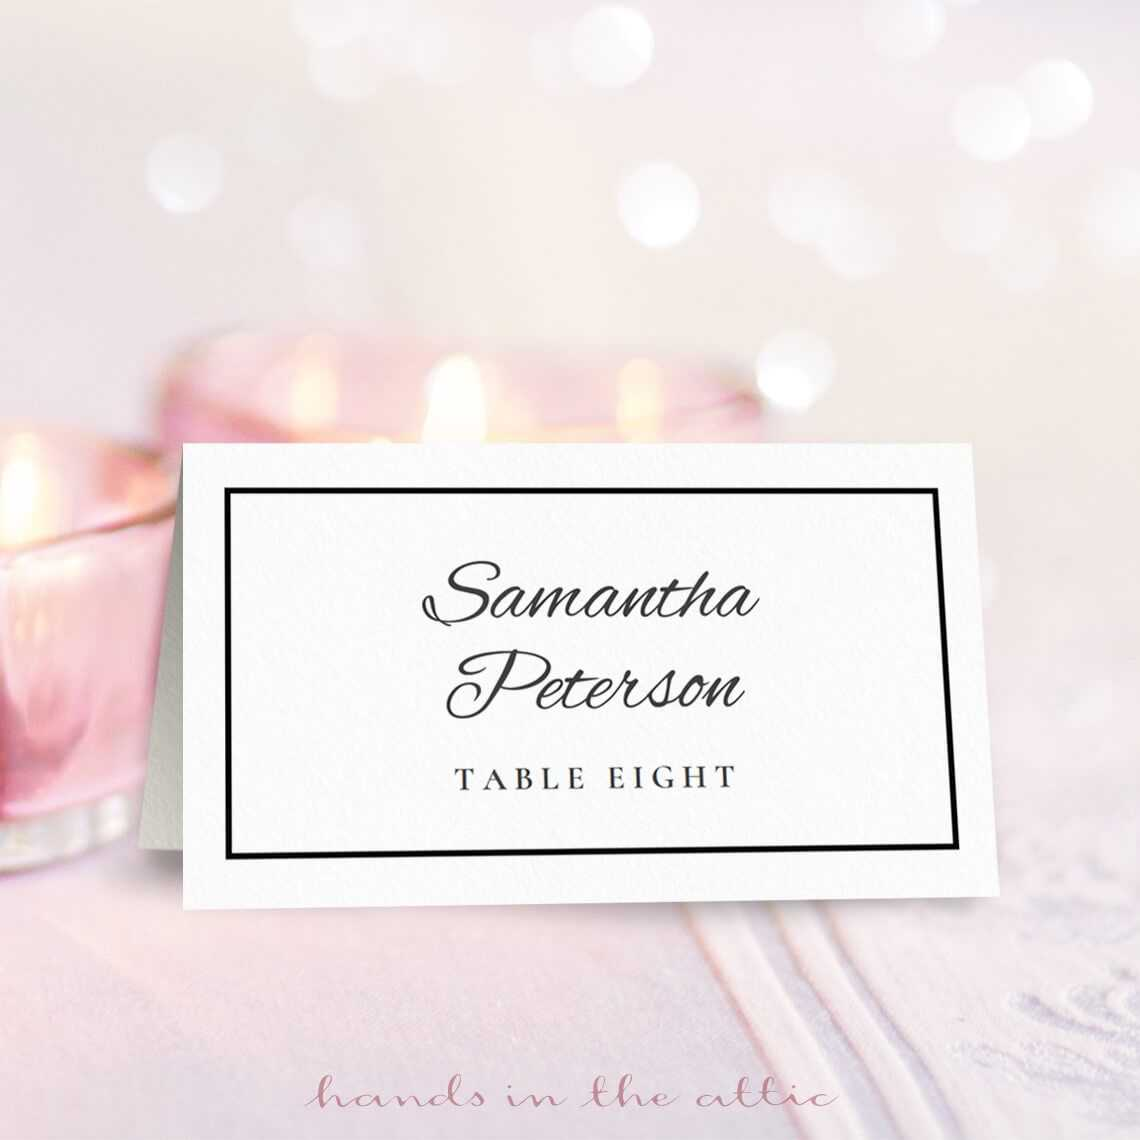 Wedding Place Card Template | Free Place Card Template With Regard To Table Name Card Template